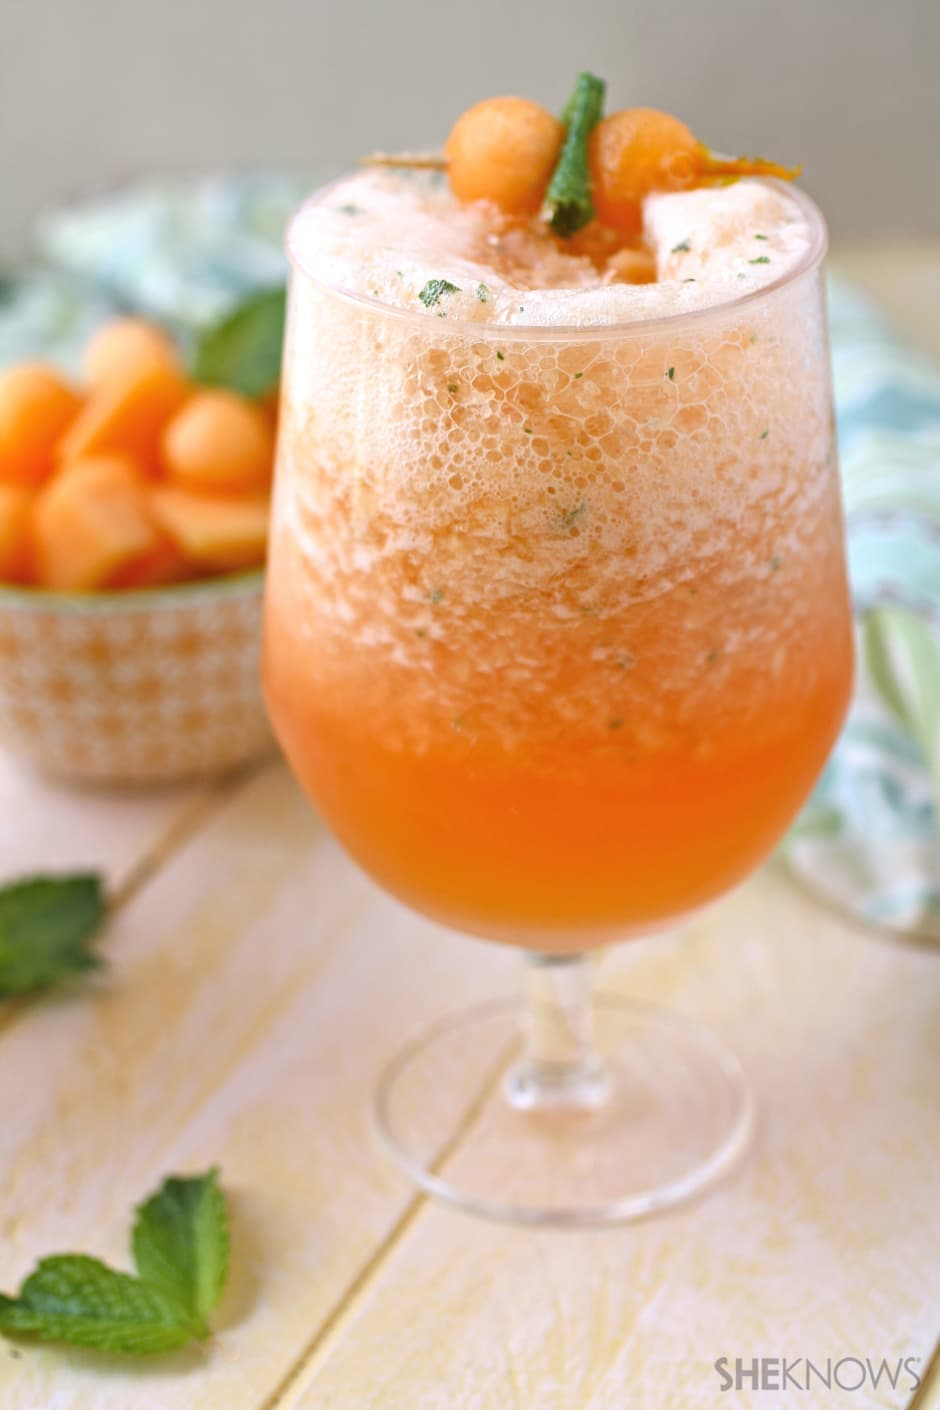 Canteloupe, Mint, and Campari Slushy. (Image: SHEKNOWS)